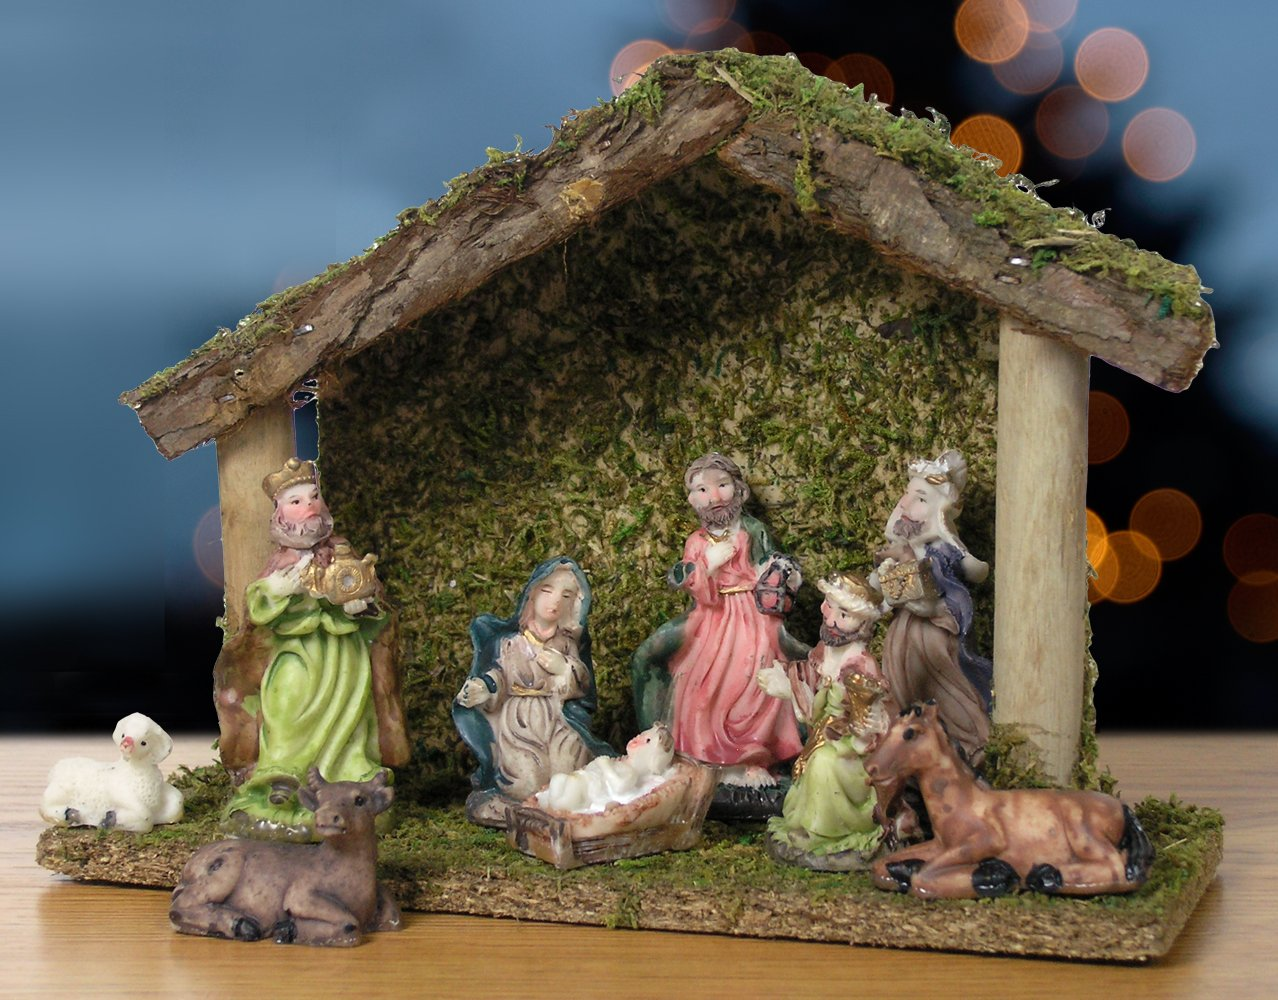 BANBERRY DESIGNS Nativity Set with Creche and 9 Piece Ceramic Figurine Set by BANBERRY DESIGNS (Image #1)